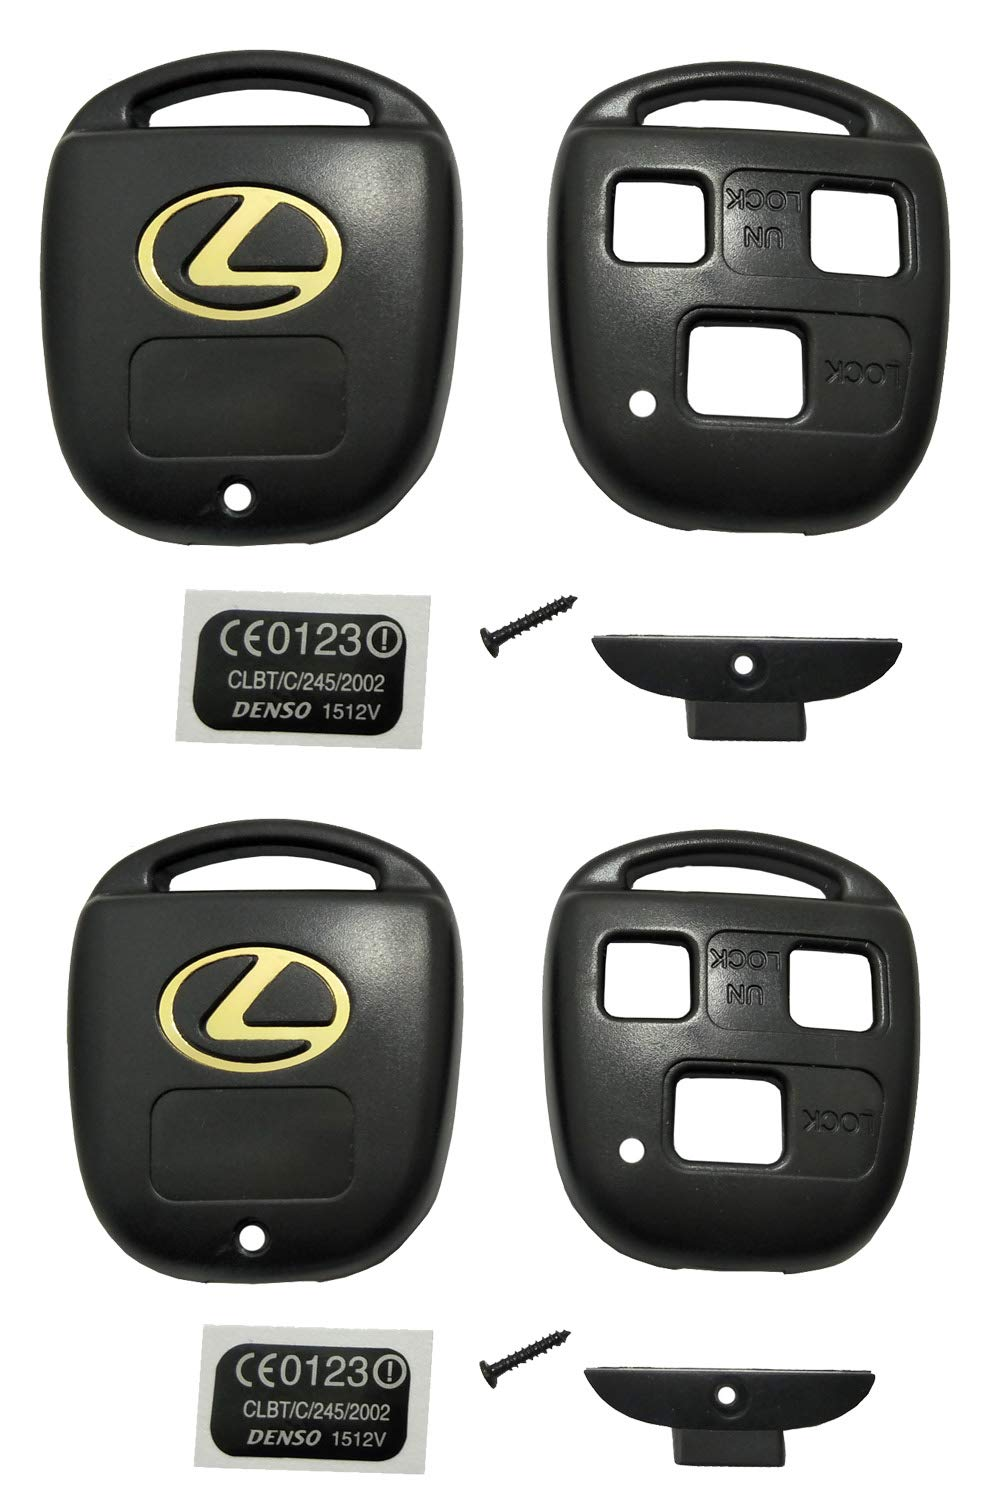 Horande Keyless Entry Remote Control Key Replacement Key Fob Case Shell Fit For Lexus ES GS GX IS LS LX RX SC Key Fob Cover Case (Pack 2) by Horande